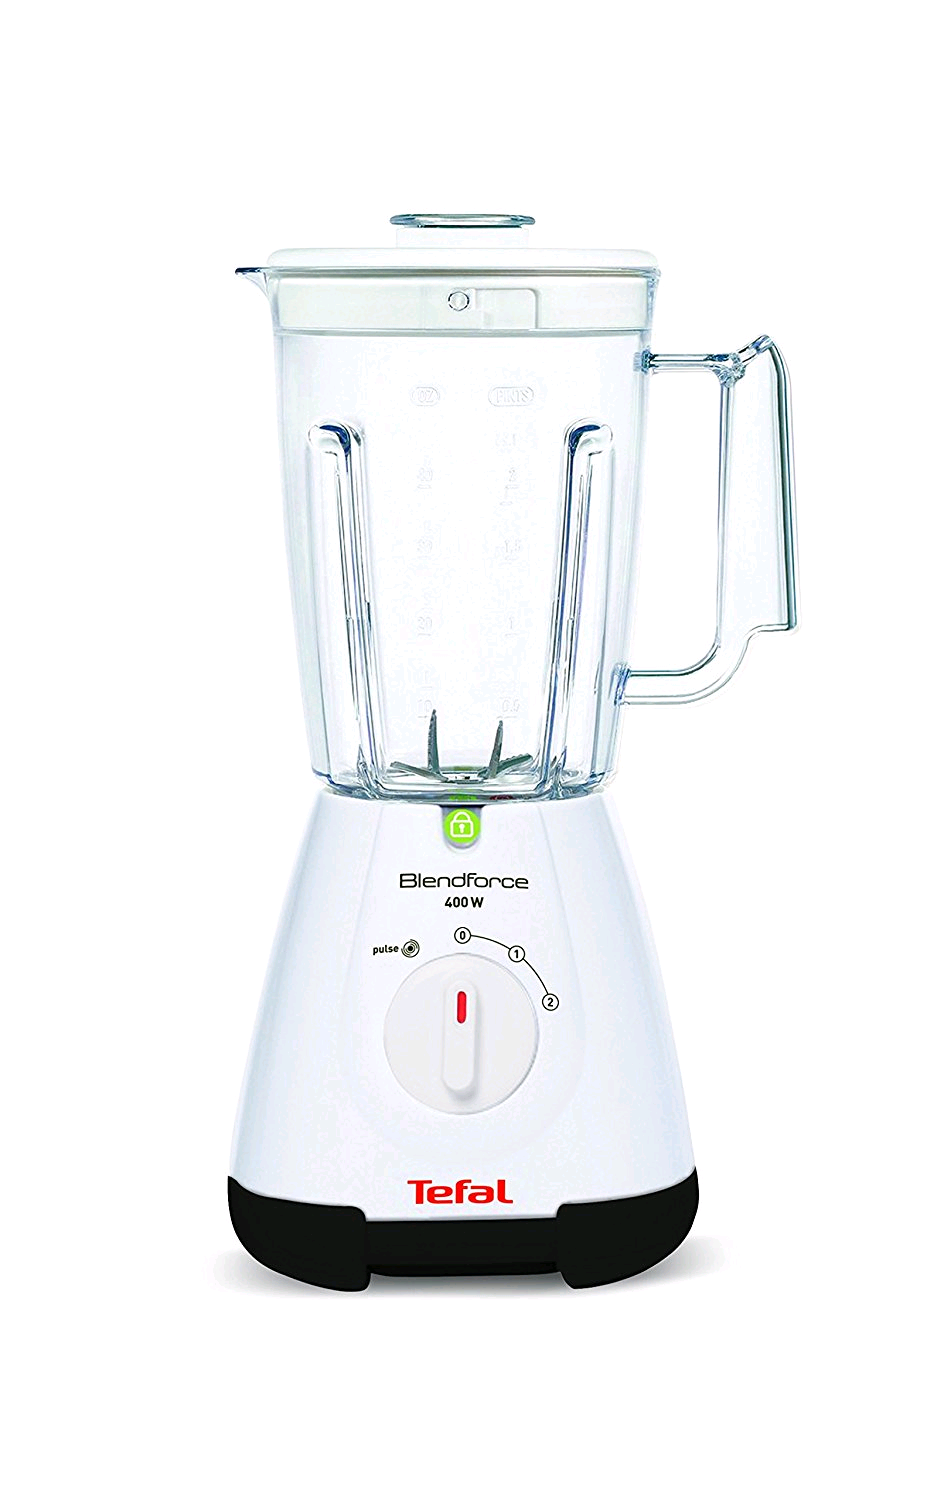 Tefal Blendforce Blender with 1.75 Litre Plastic Jug - White